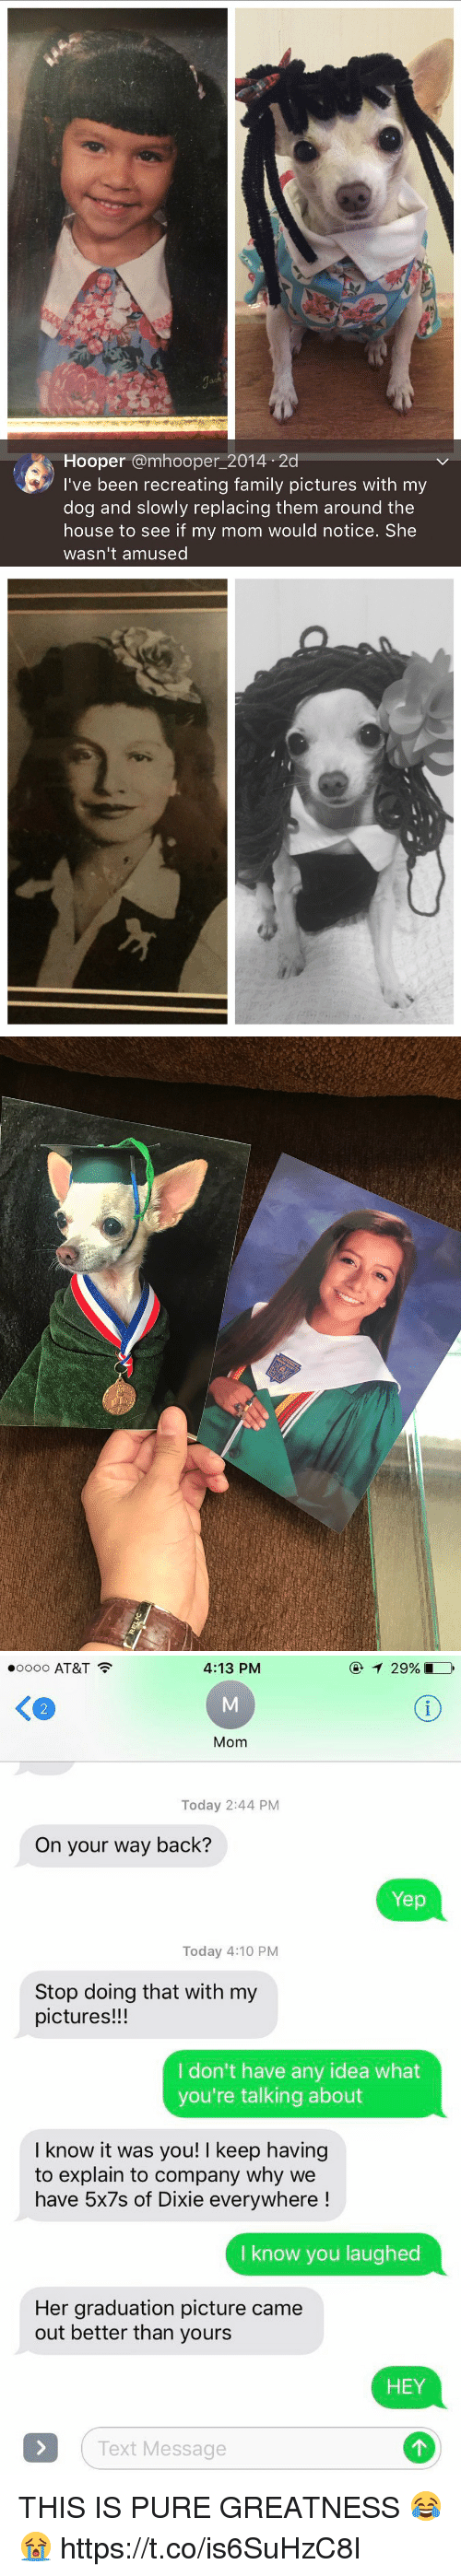 relic: Hooper amhooper 2014 2d  I've been recreating family pictures with my  dog and slowly replacing them around the  house to see if my mom would notice. She  wasn't amused   RELIC   4:13 PM  oooo AT&T  Mom  Today 2:44 PM  On your way back?  Yep  Today 4:10 PM  Stop doing that with my  pictures!!!  I don't have any idea what  you're talking about  I know it was you! l keep having  to explain to company why we  have 5x7s of Dixie everywhere  know you laughed  Her graduation picture came  out better than yours  HEY  Text Message THIS IS PURE GREATNESS 😂😭 https://t.co/is6SuHzC8I